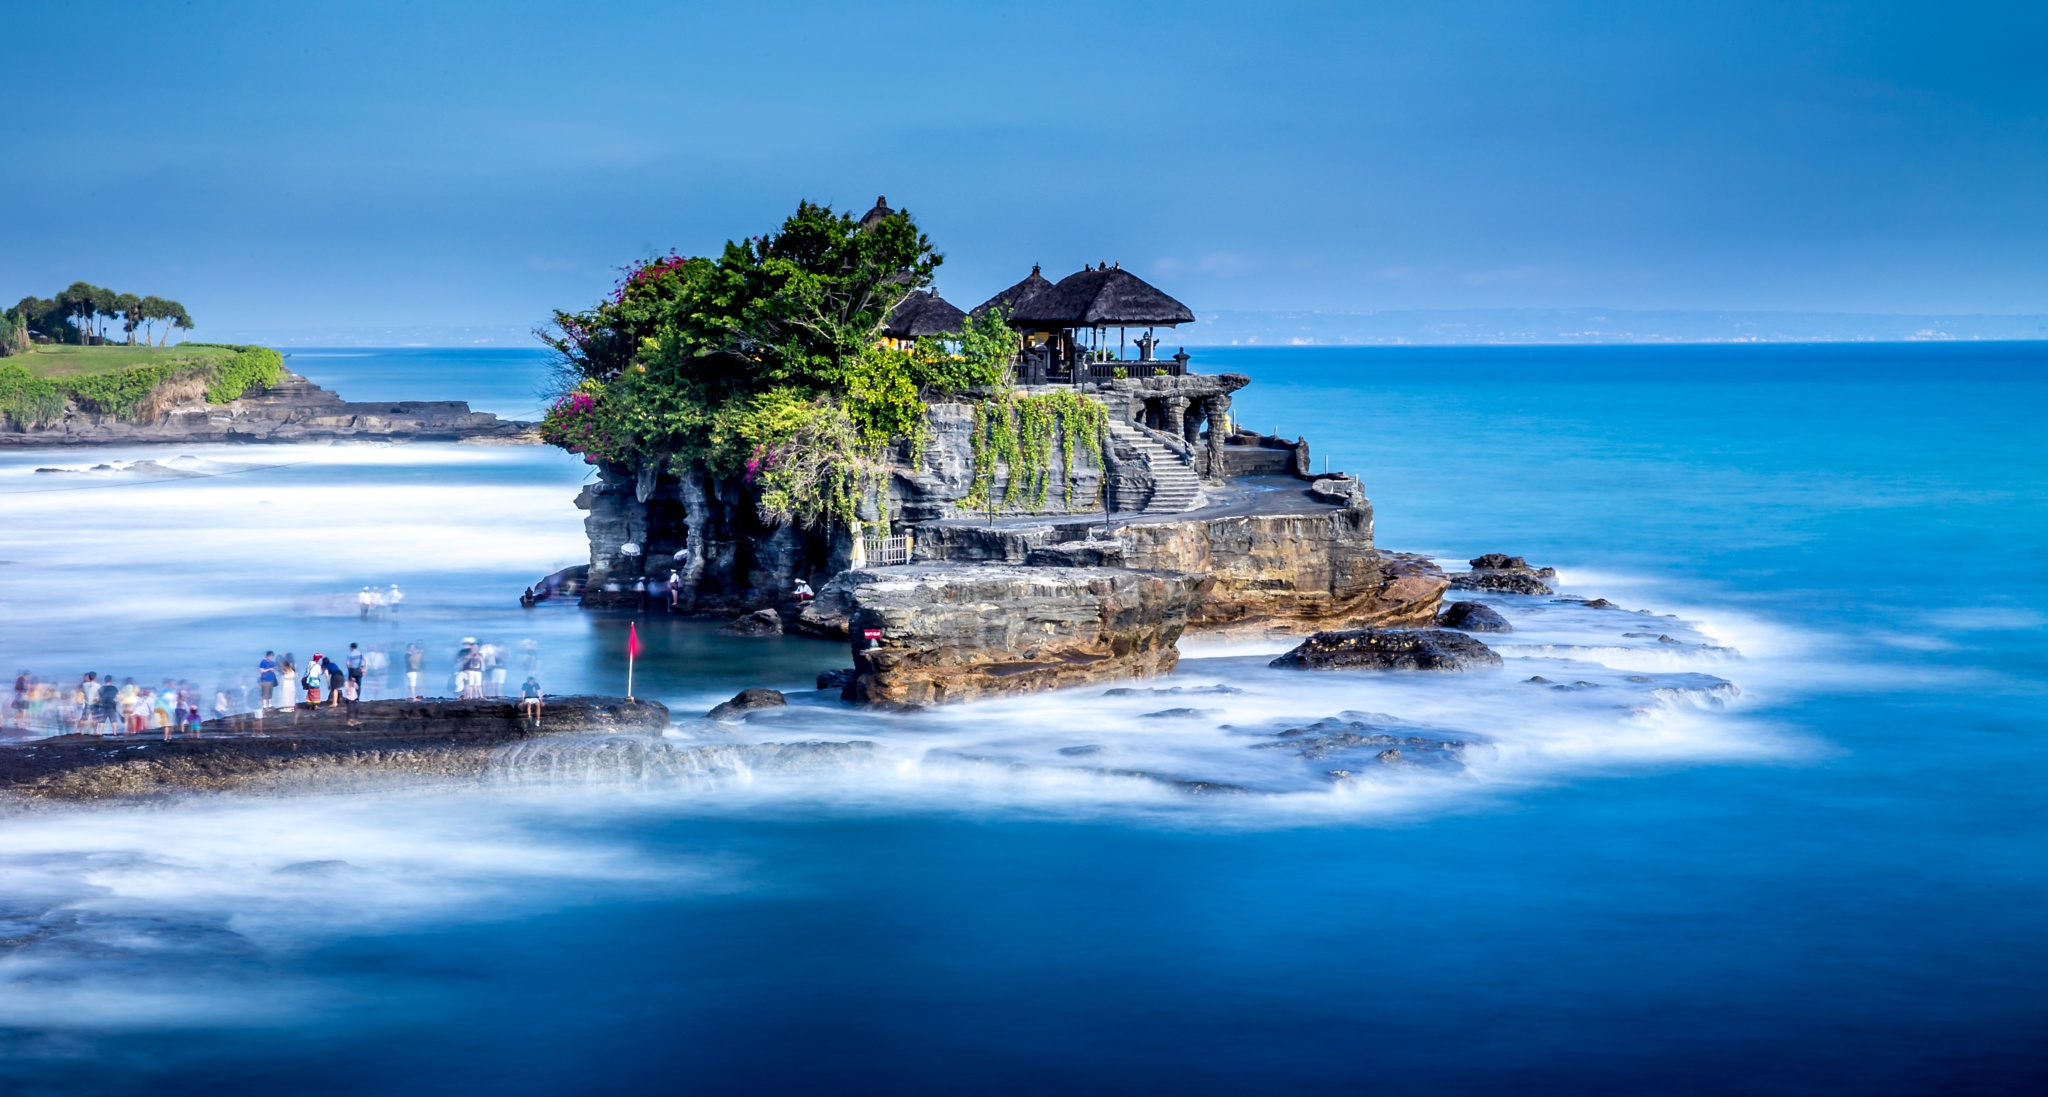 Dreamtime at Tanah Lot  by duane.norrie